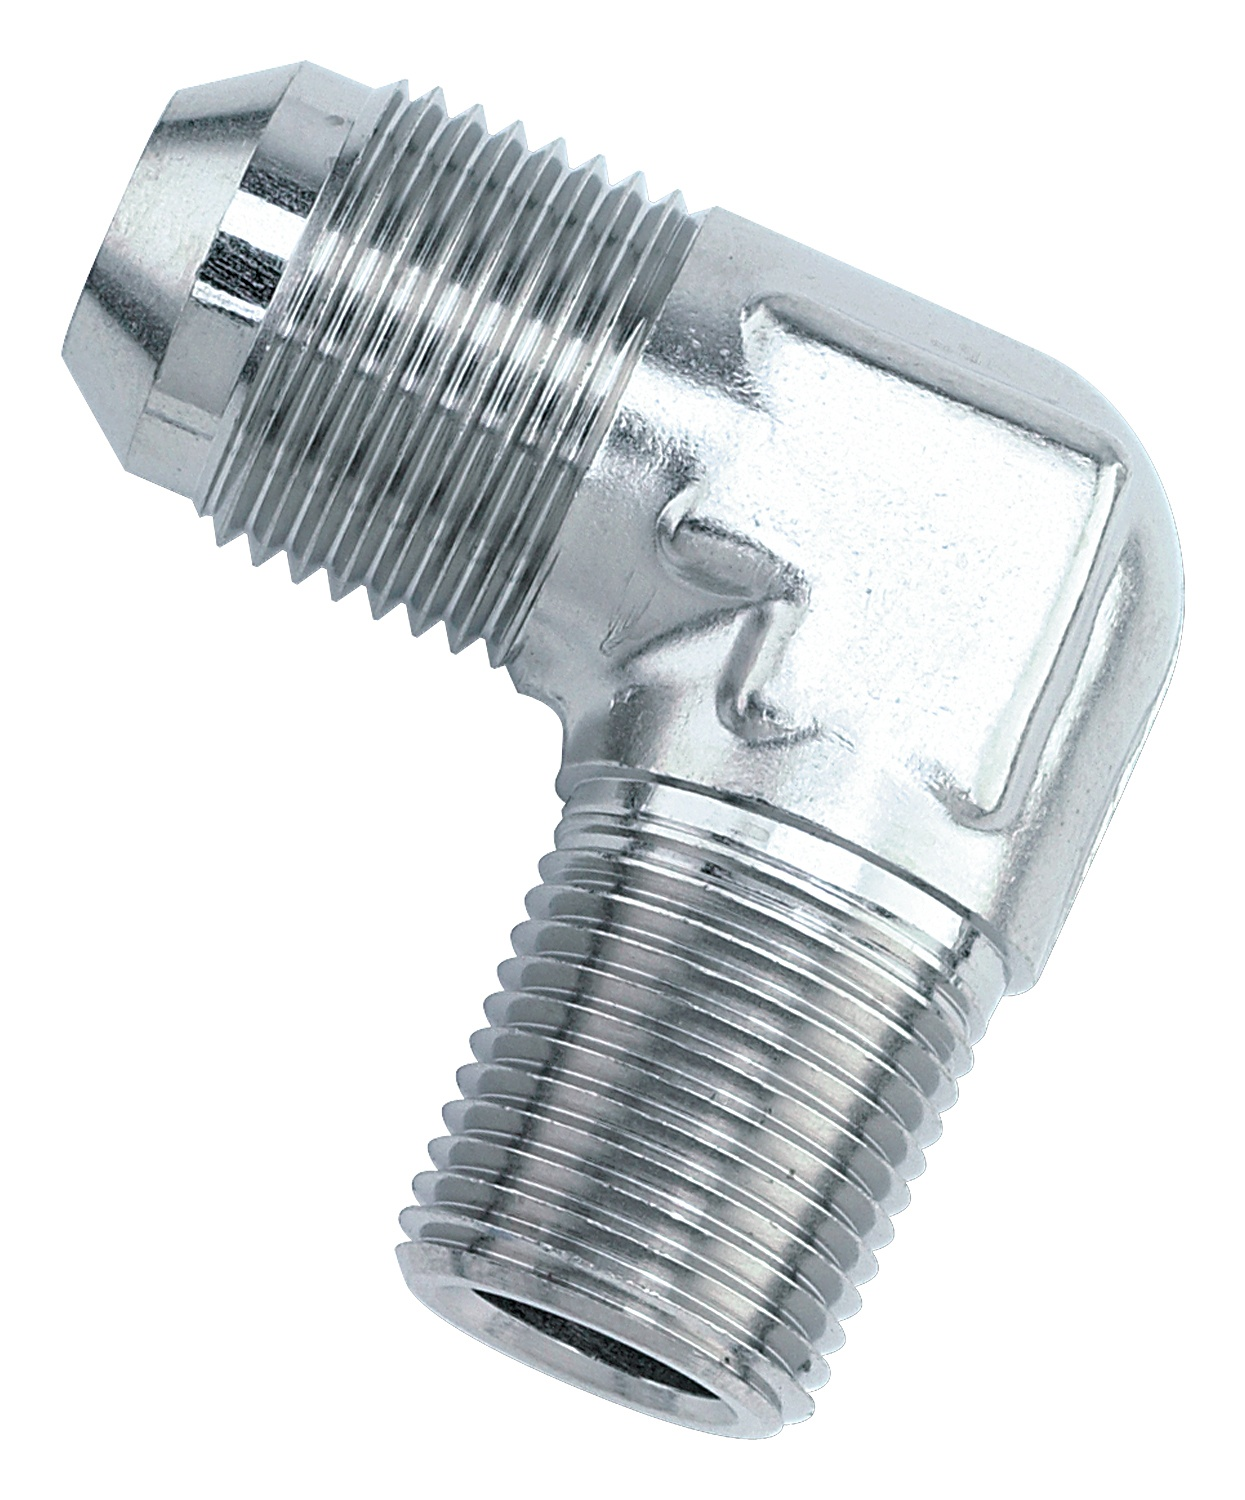 Russell RUS-660840 ADAPTER FITTING